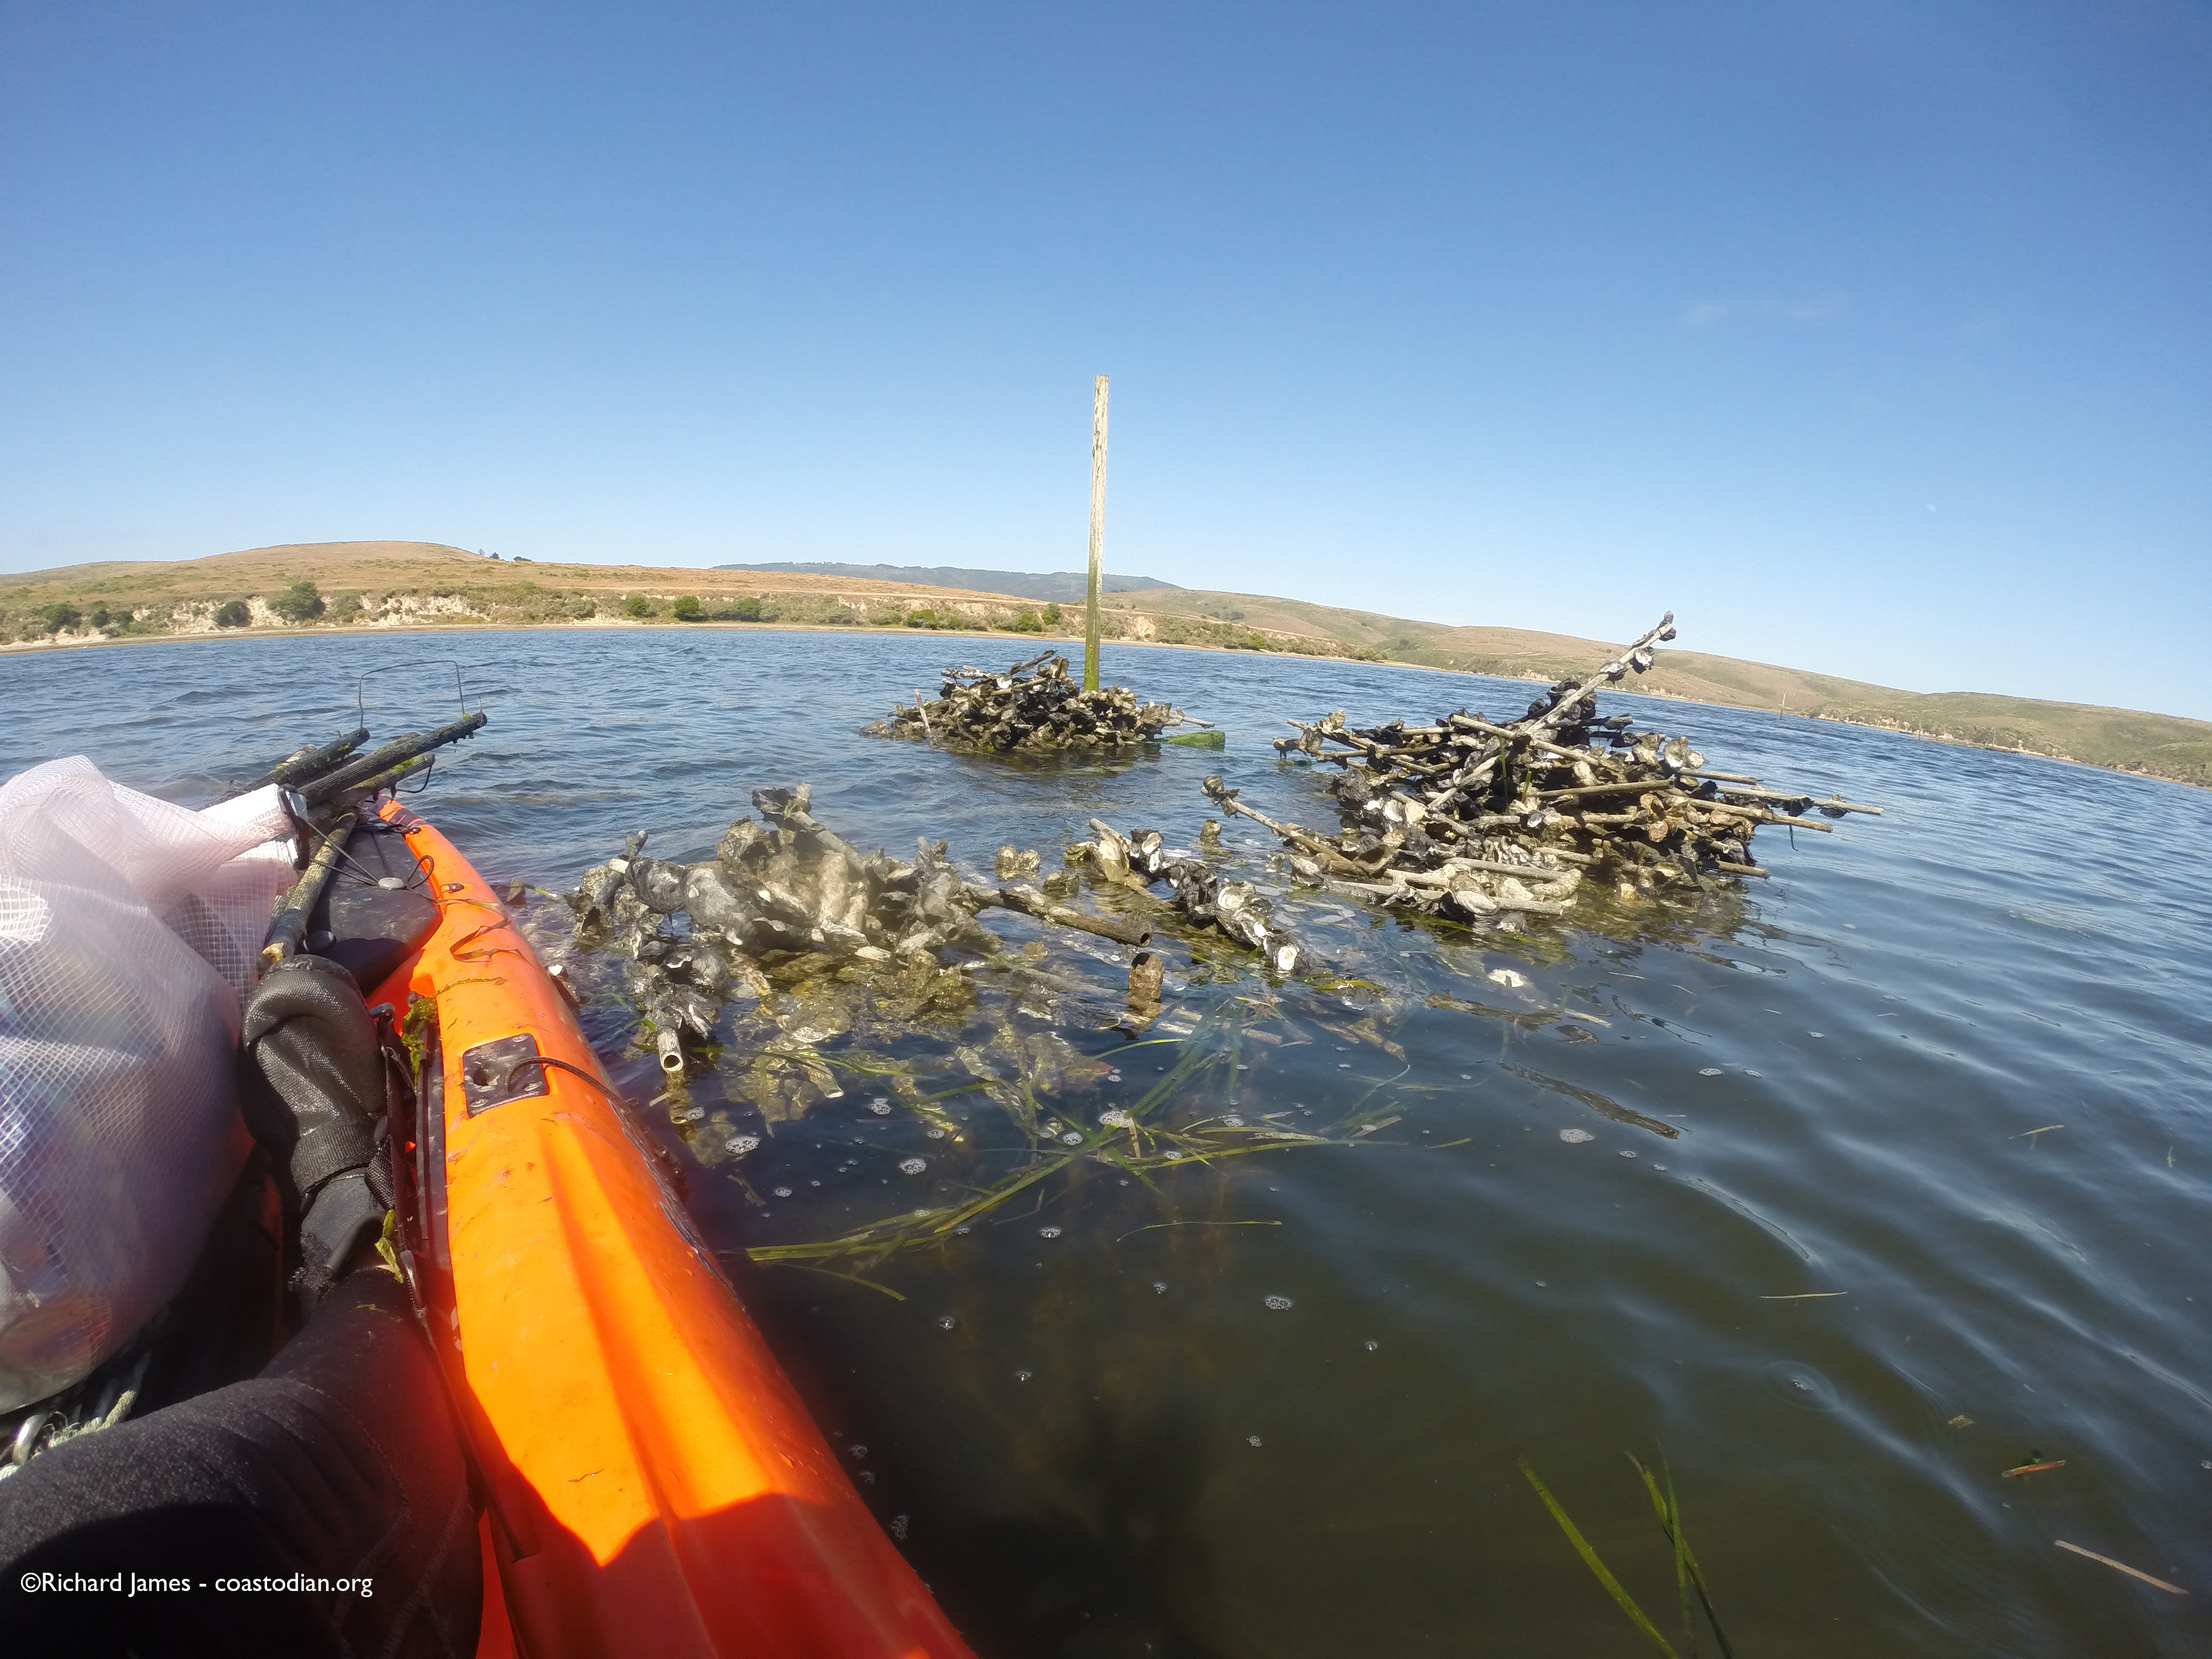 """60-70 """"french tubes"""" left on floor of Drakes Estero by Drakes Bay Oyster Company"""